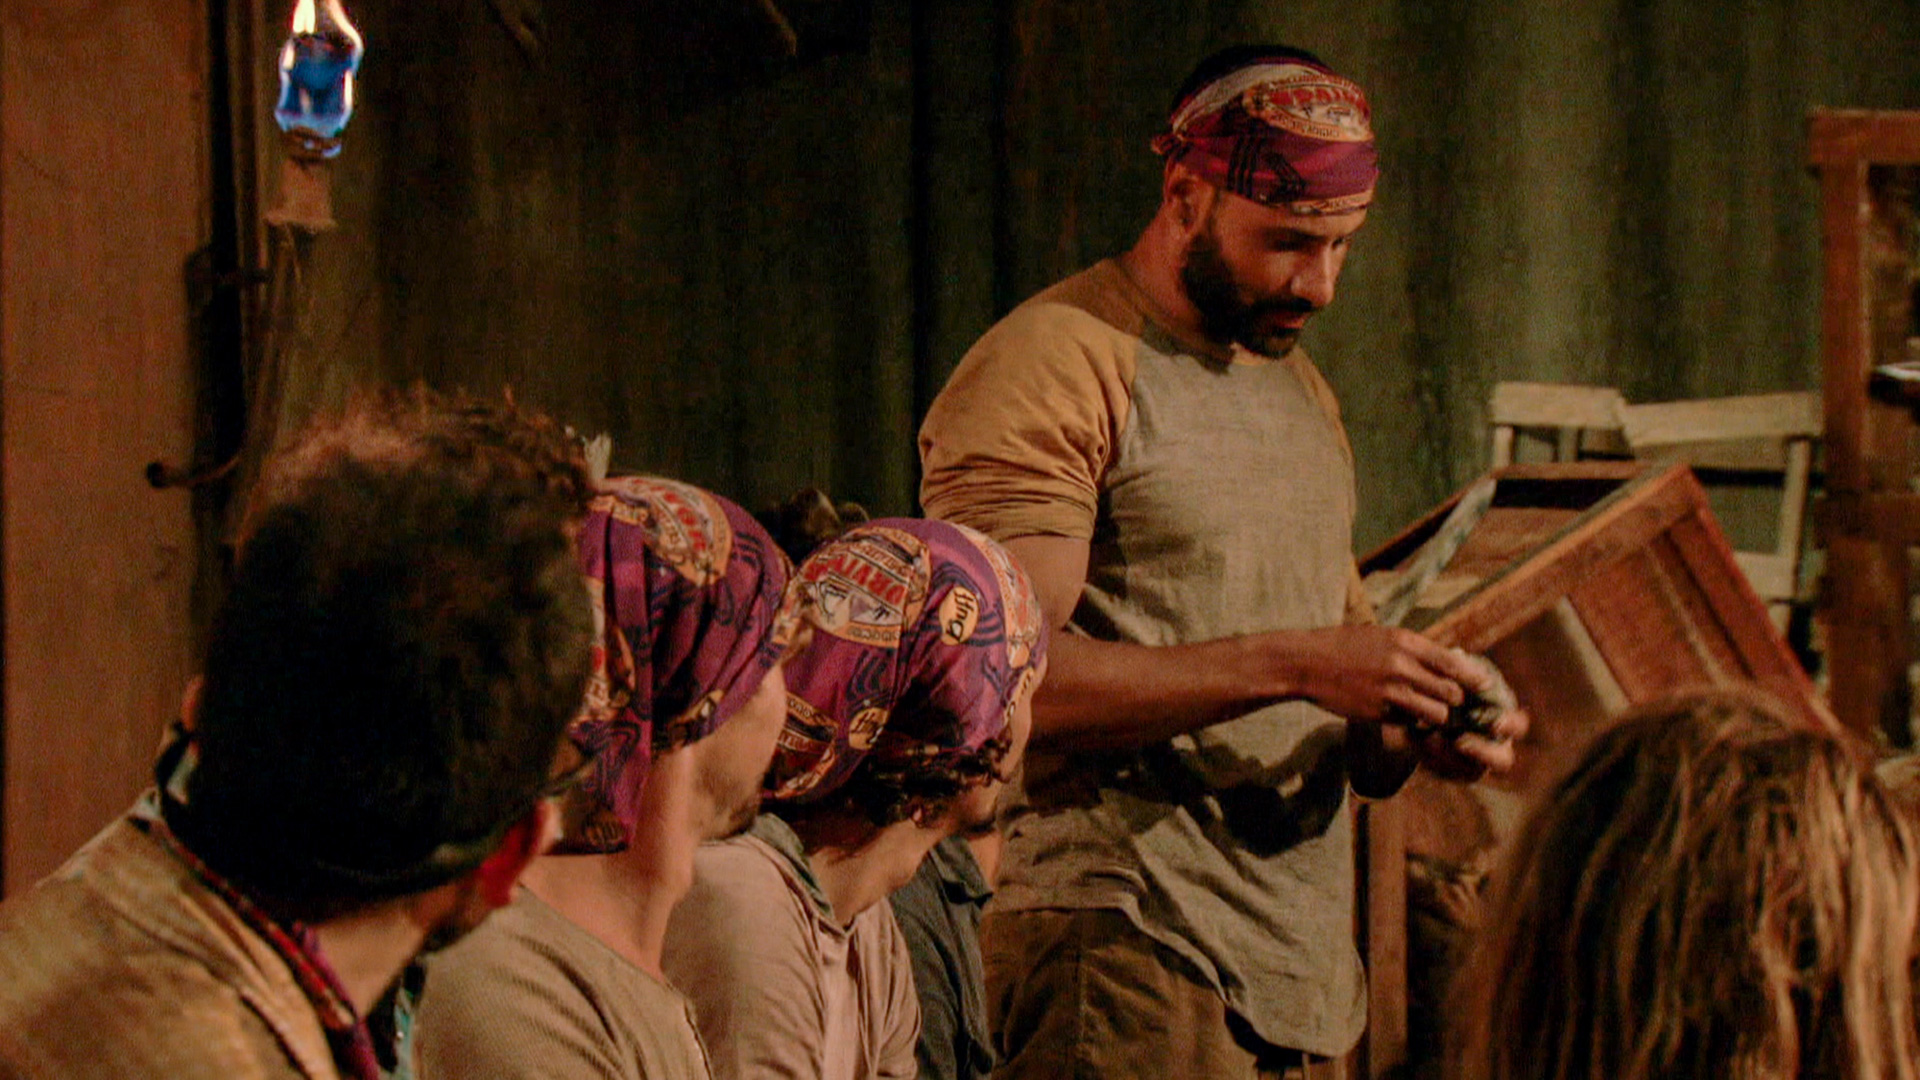 When Joe proudly wore his Idol at Tribal Council.